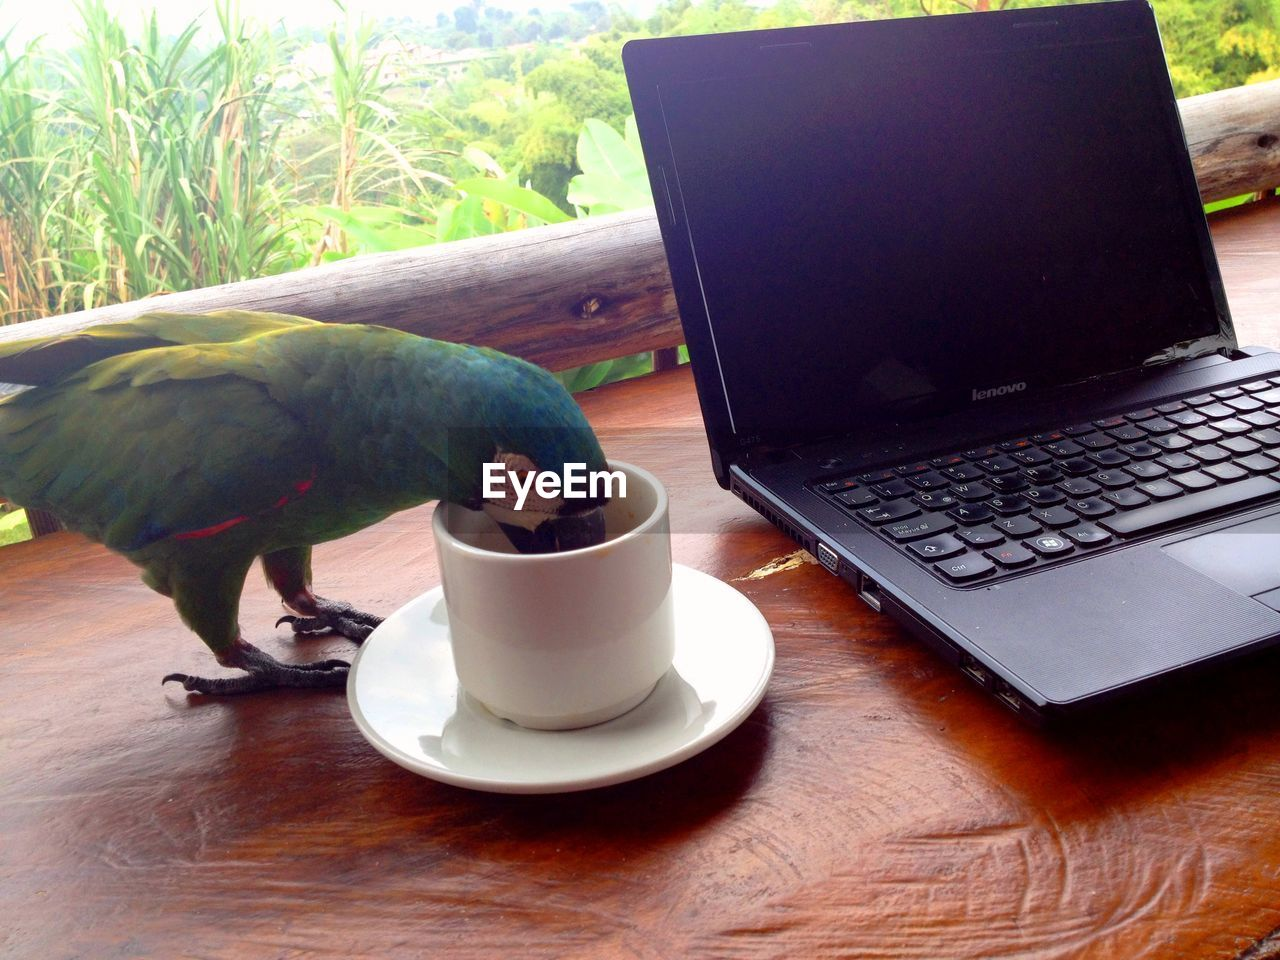 bird, animal themes, laptop, table, one animal, animals in the wild, indoors, animal wildlife, no people, wireless technology, technology, parrot, day, close-up, perching, nature, mammal